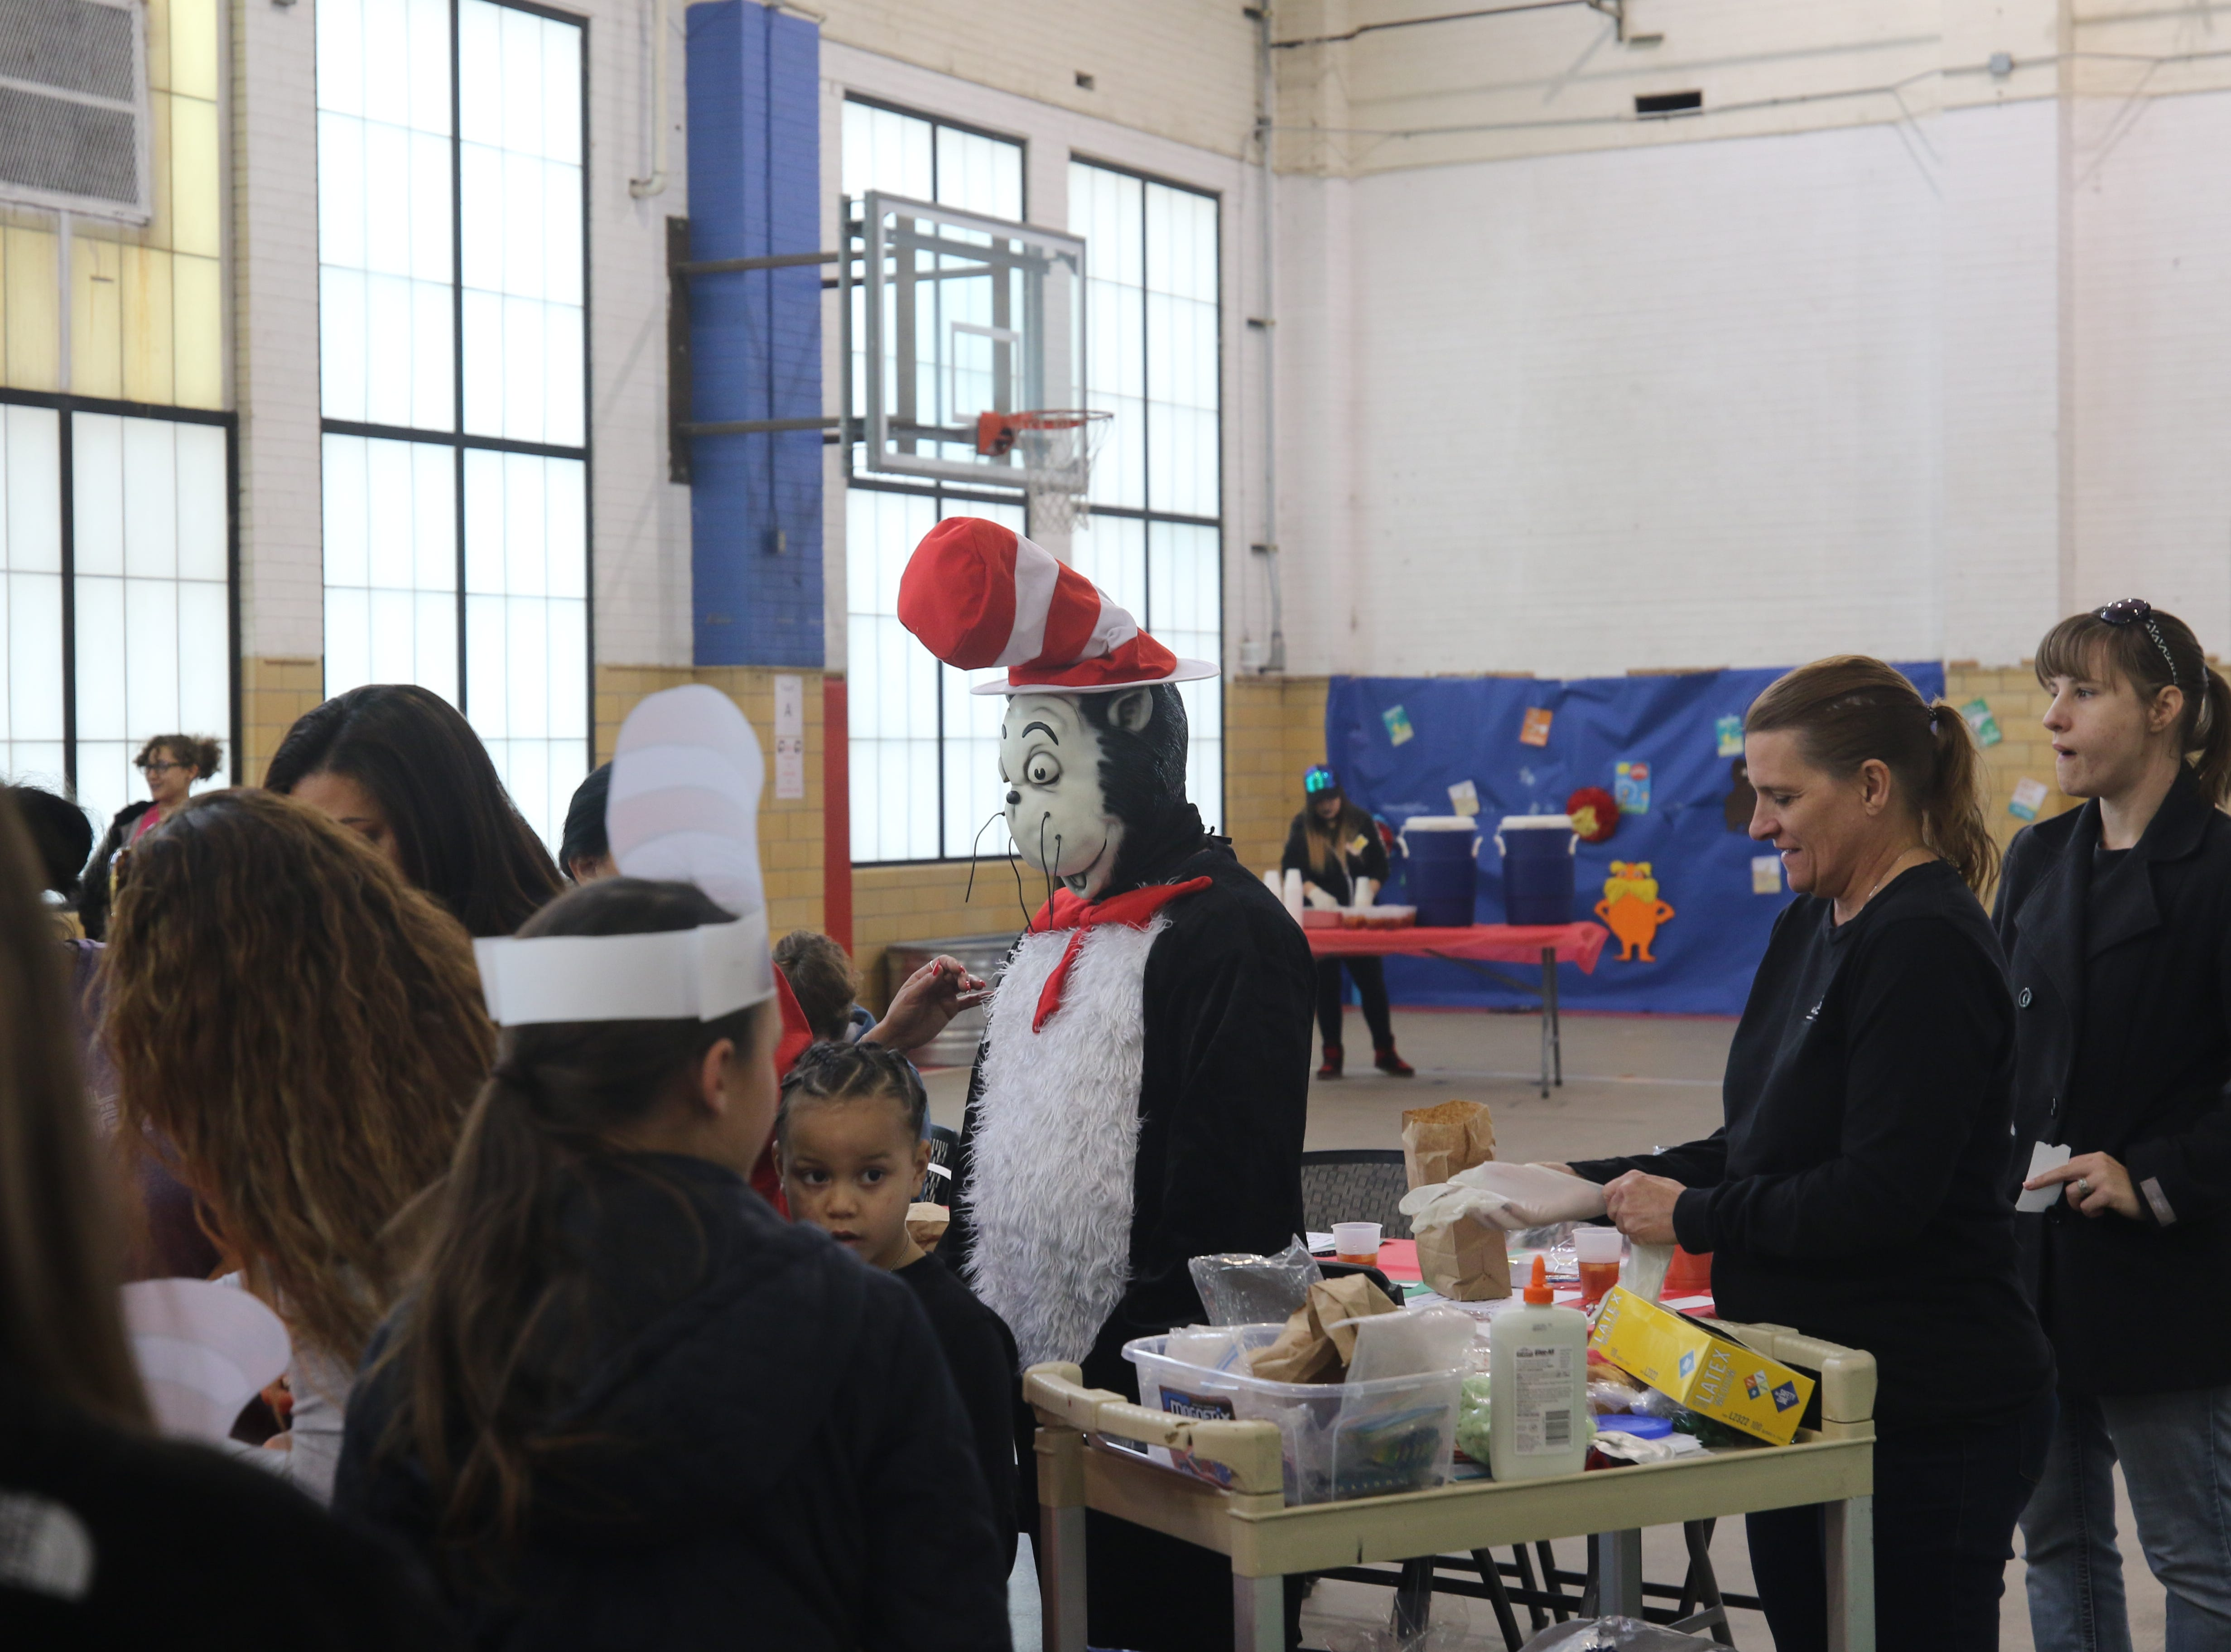 The Cat in the Hat poses with children March 6 at the Riverwalk Recreation Center which celebrated Dr. Seuss' birthday.